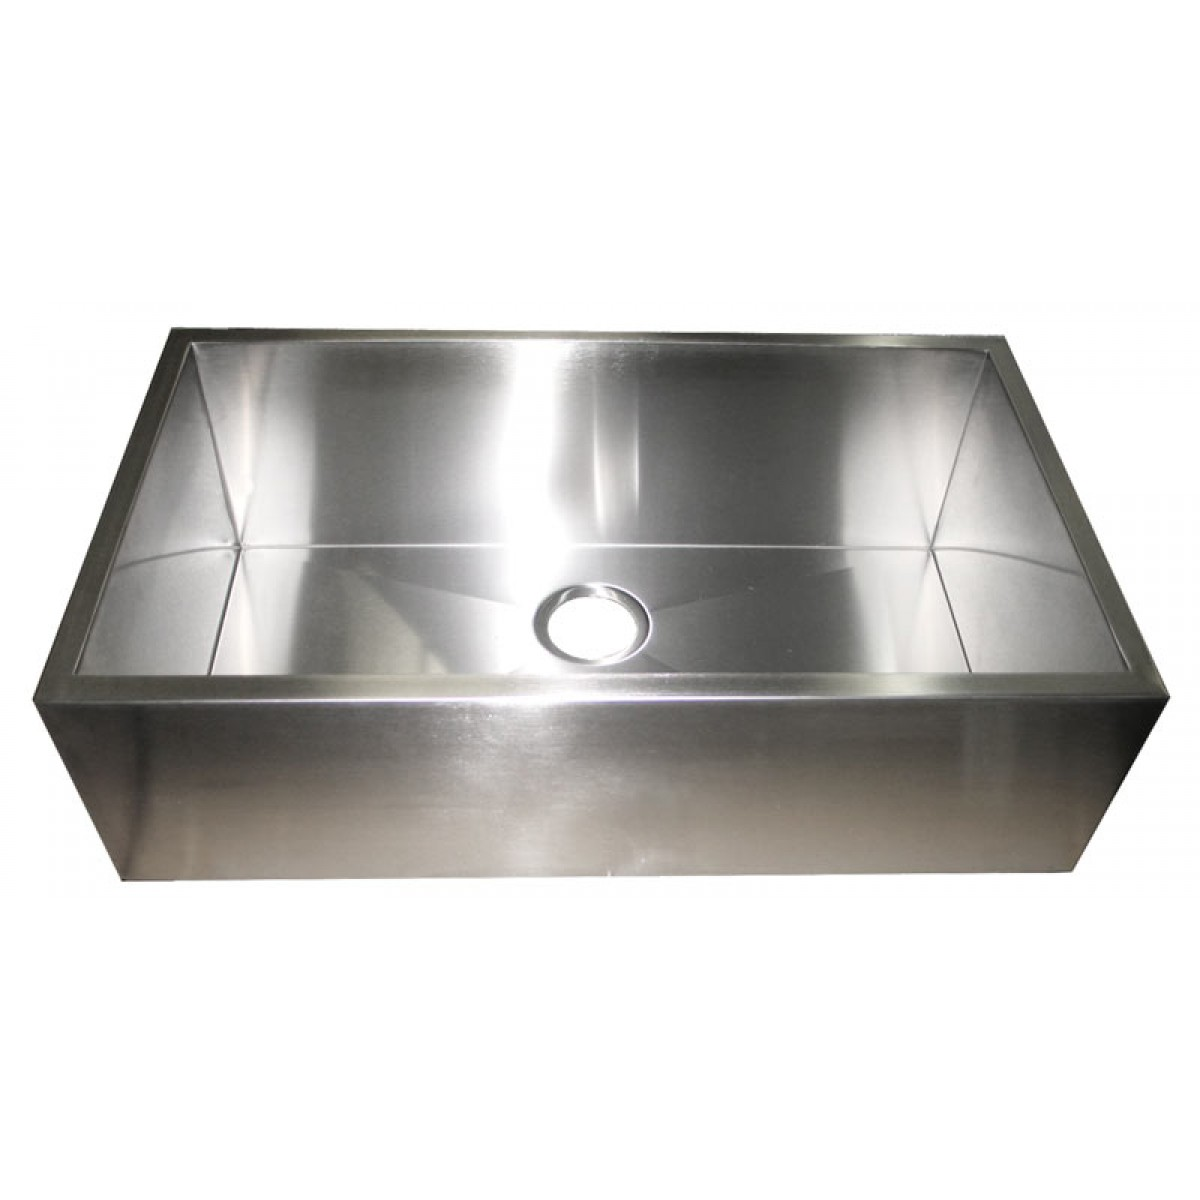 Stainless Steel Flat Front Farm Apron Kitchen Sink